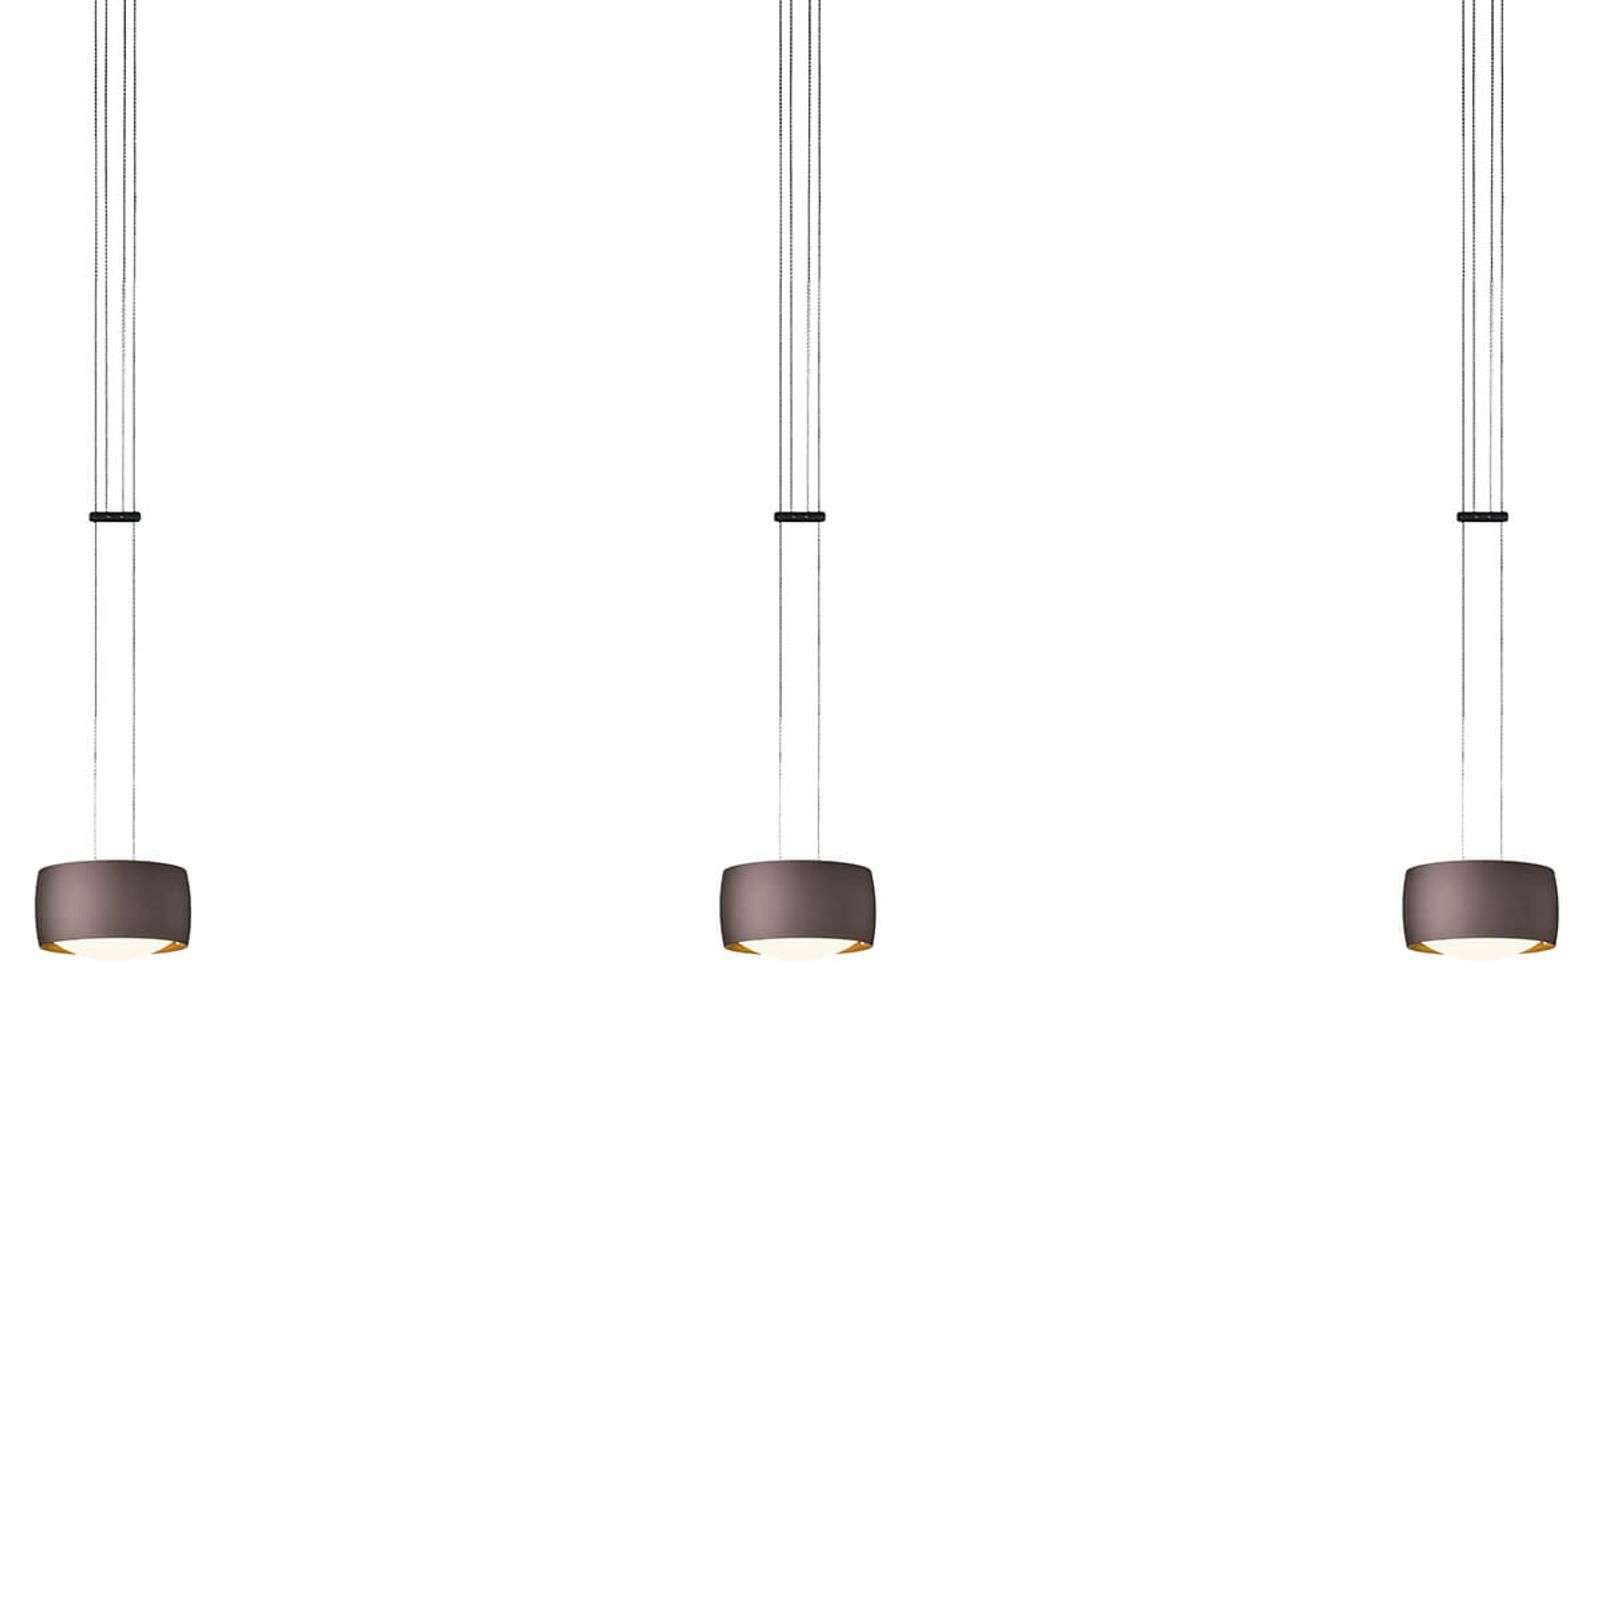 OLIGO Grace lampada LED, 3 luce marrone